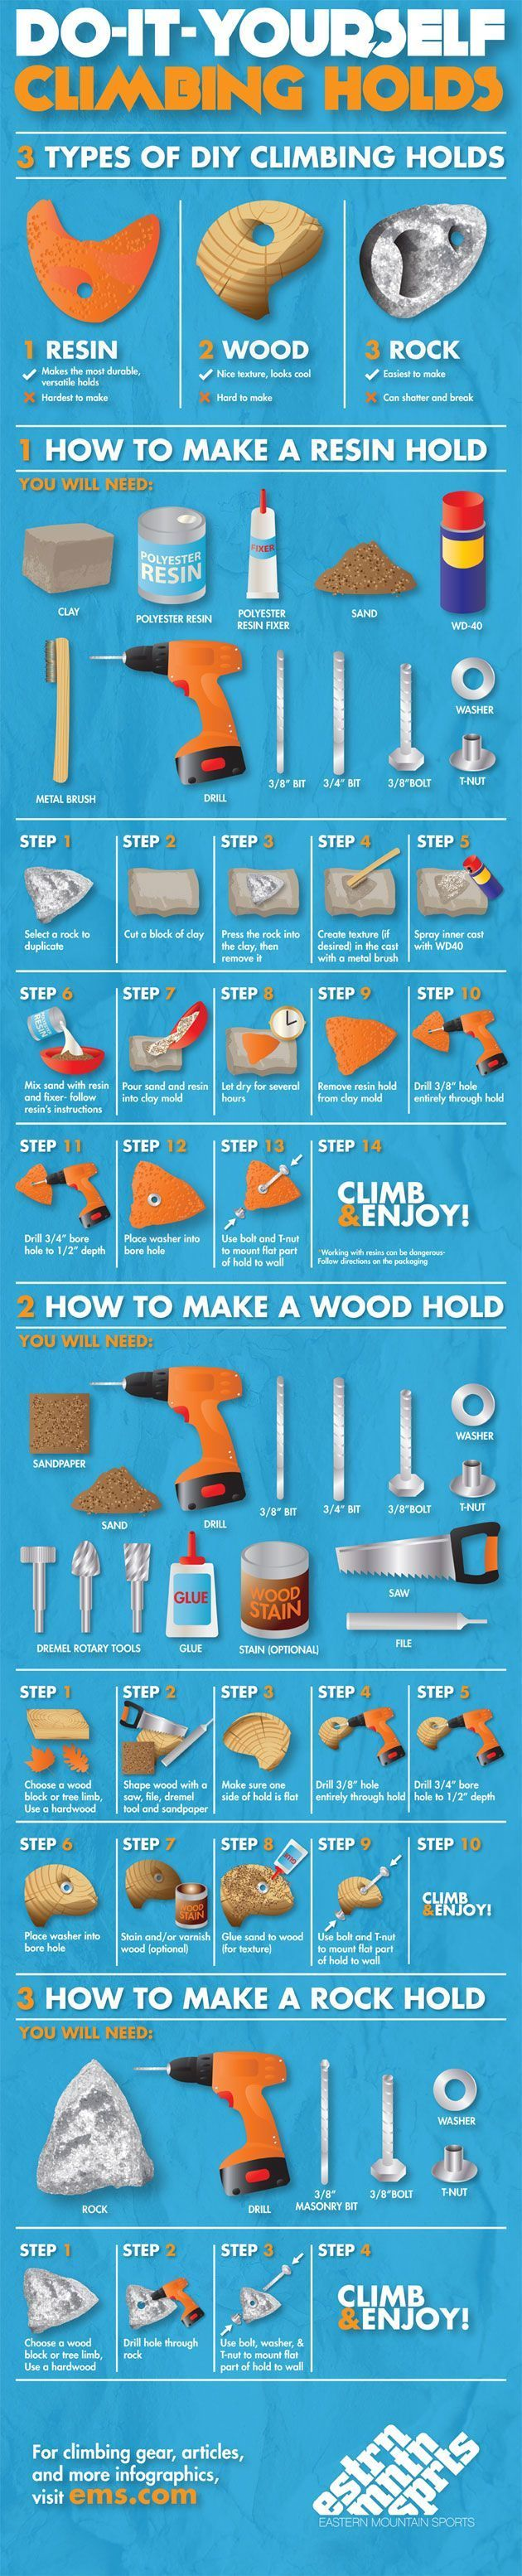 Tips to Make DIY Climbing Holds - Tipsographic